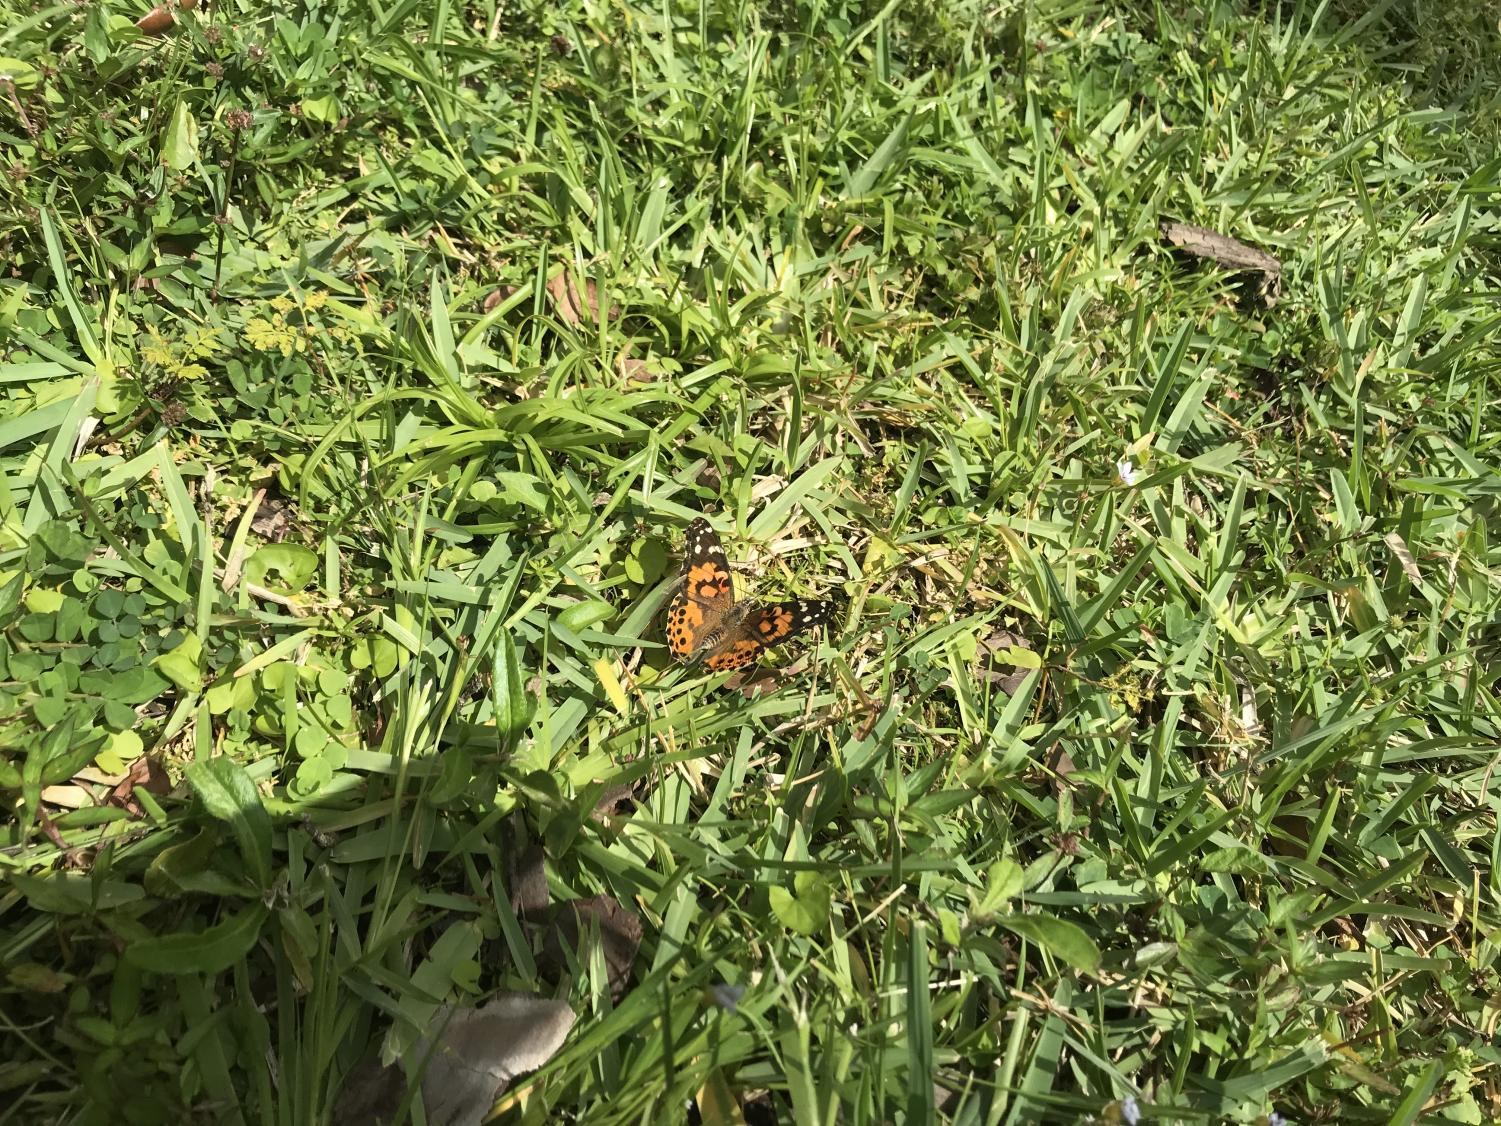 A+butterfly+takes+flight+into+the+grass+once+its+muscles+warm+up.